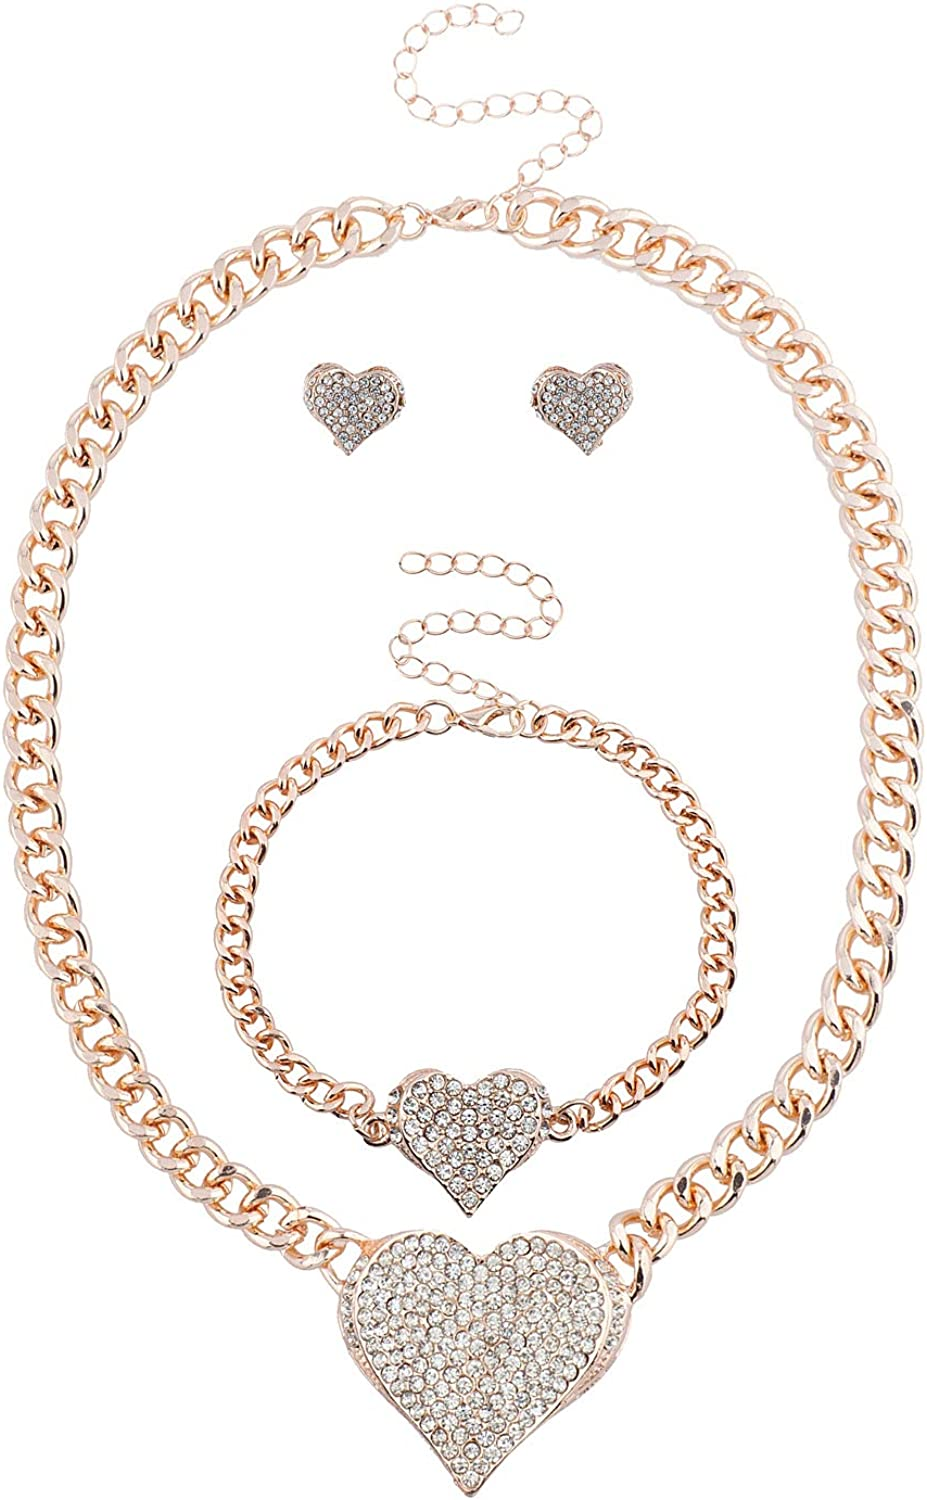 Lux Accessories Bling Heart Chain Earring Bracelet Necklace Jewelry Gift Set 3PC (Rose Gold)